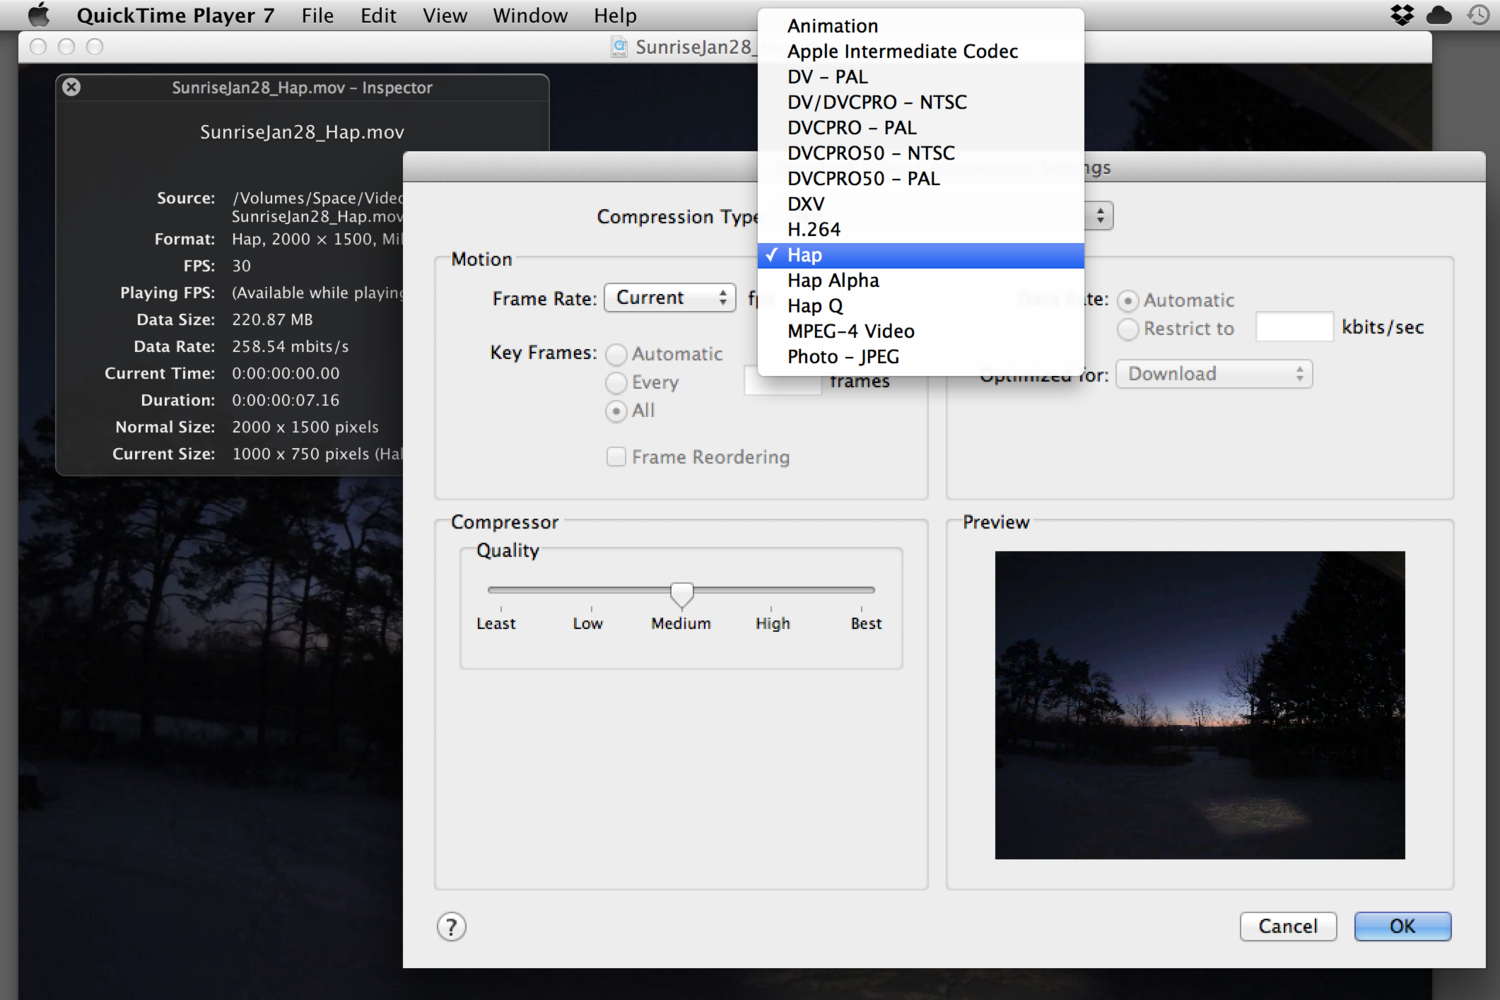 Movies can be converted to Hap, Hap Alpha, and Hap Q from the standard QuickTime Export Panel.